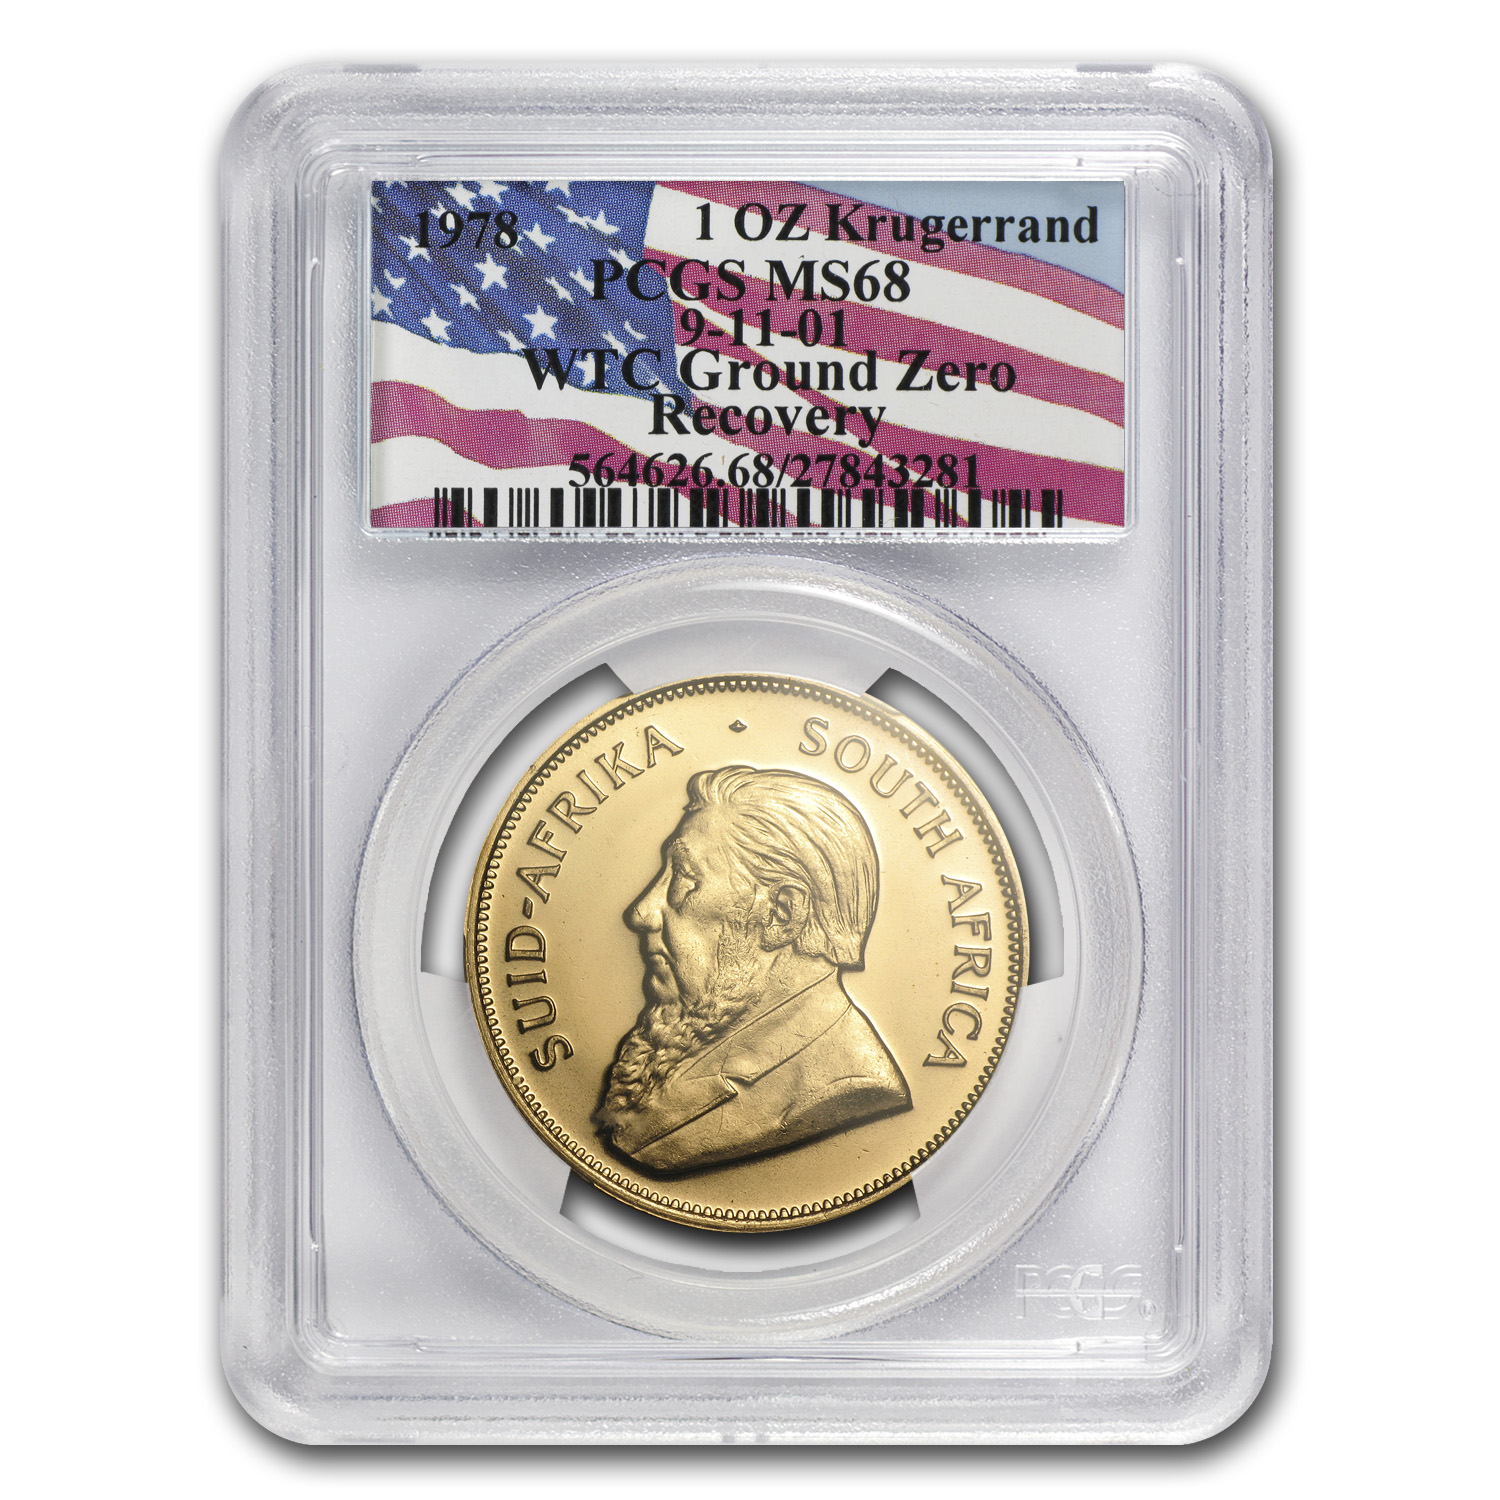 1978 1 oz Gold South African Krugerrand PCGS MS-68 (WTC)